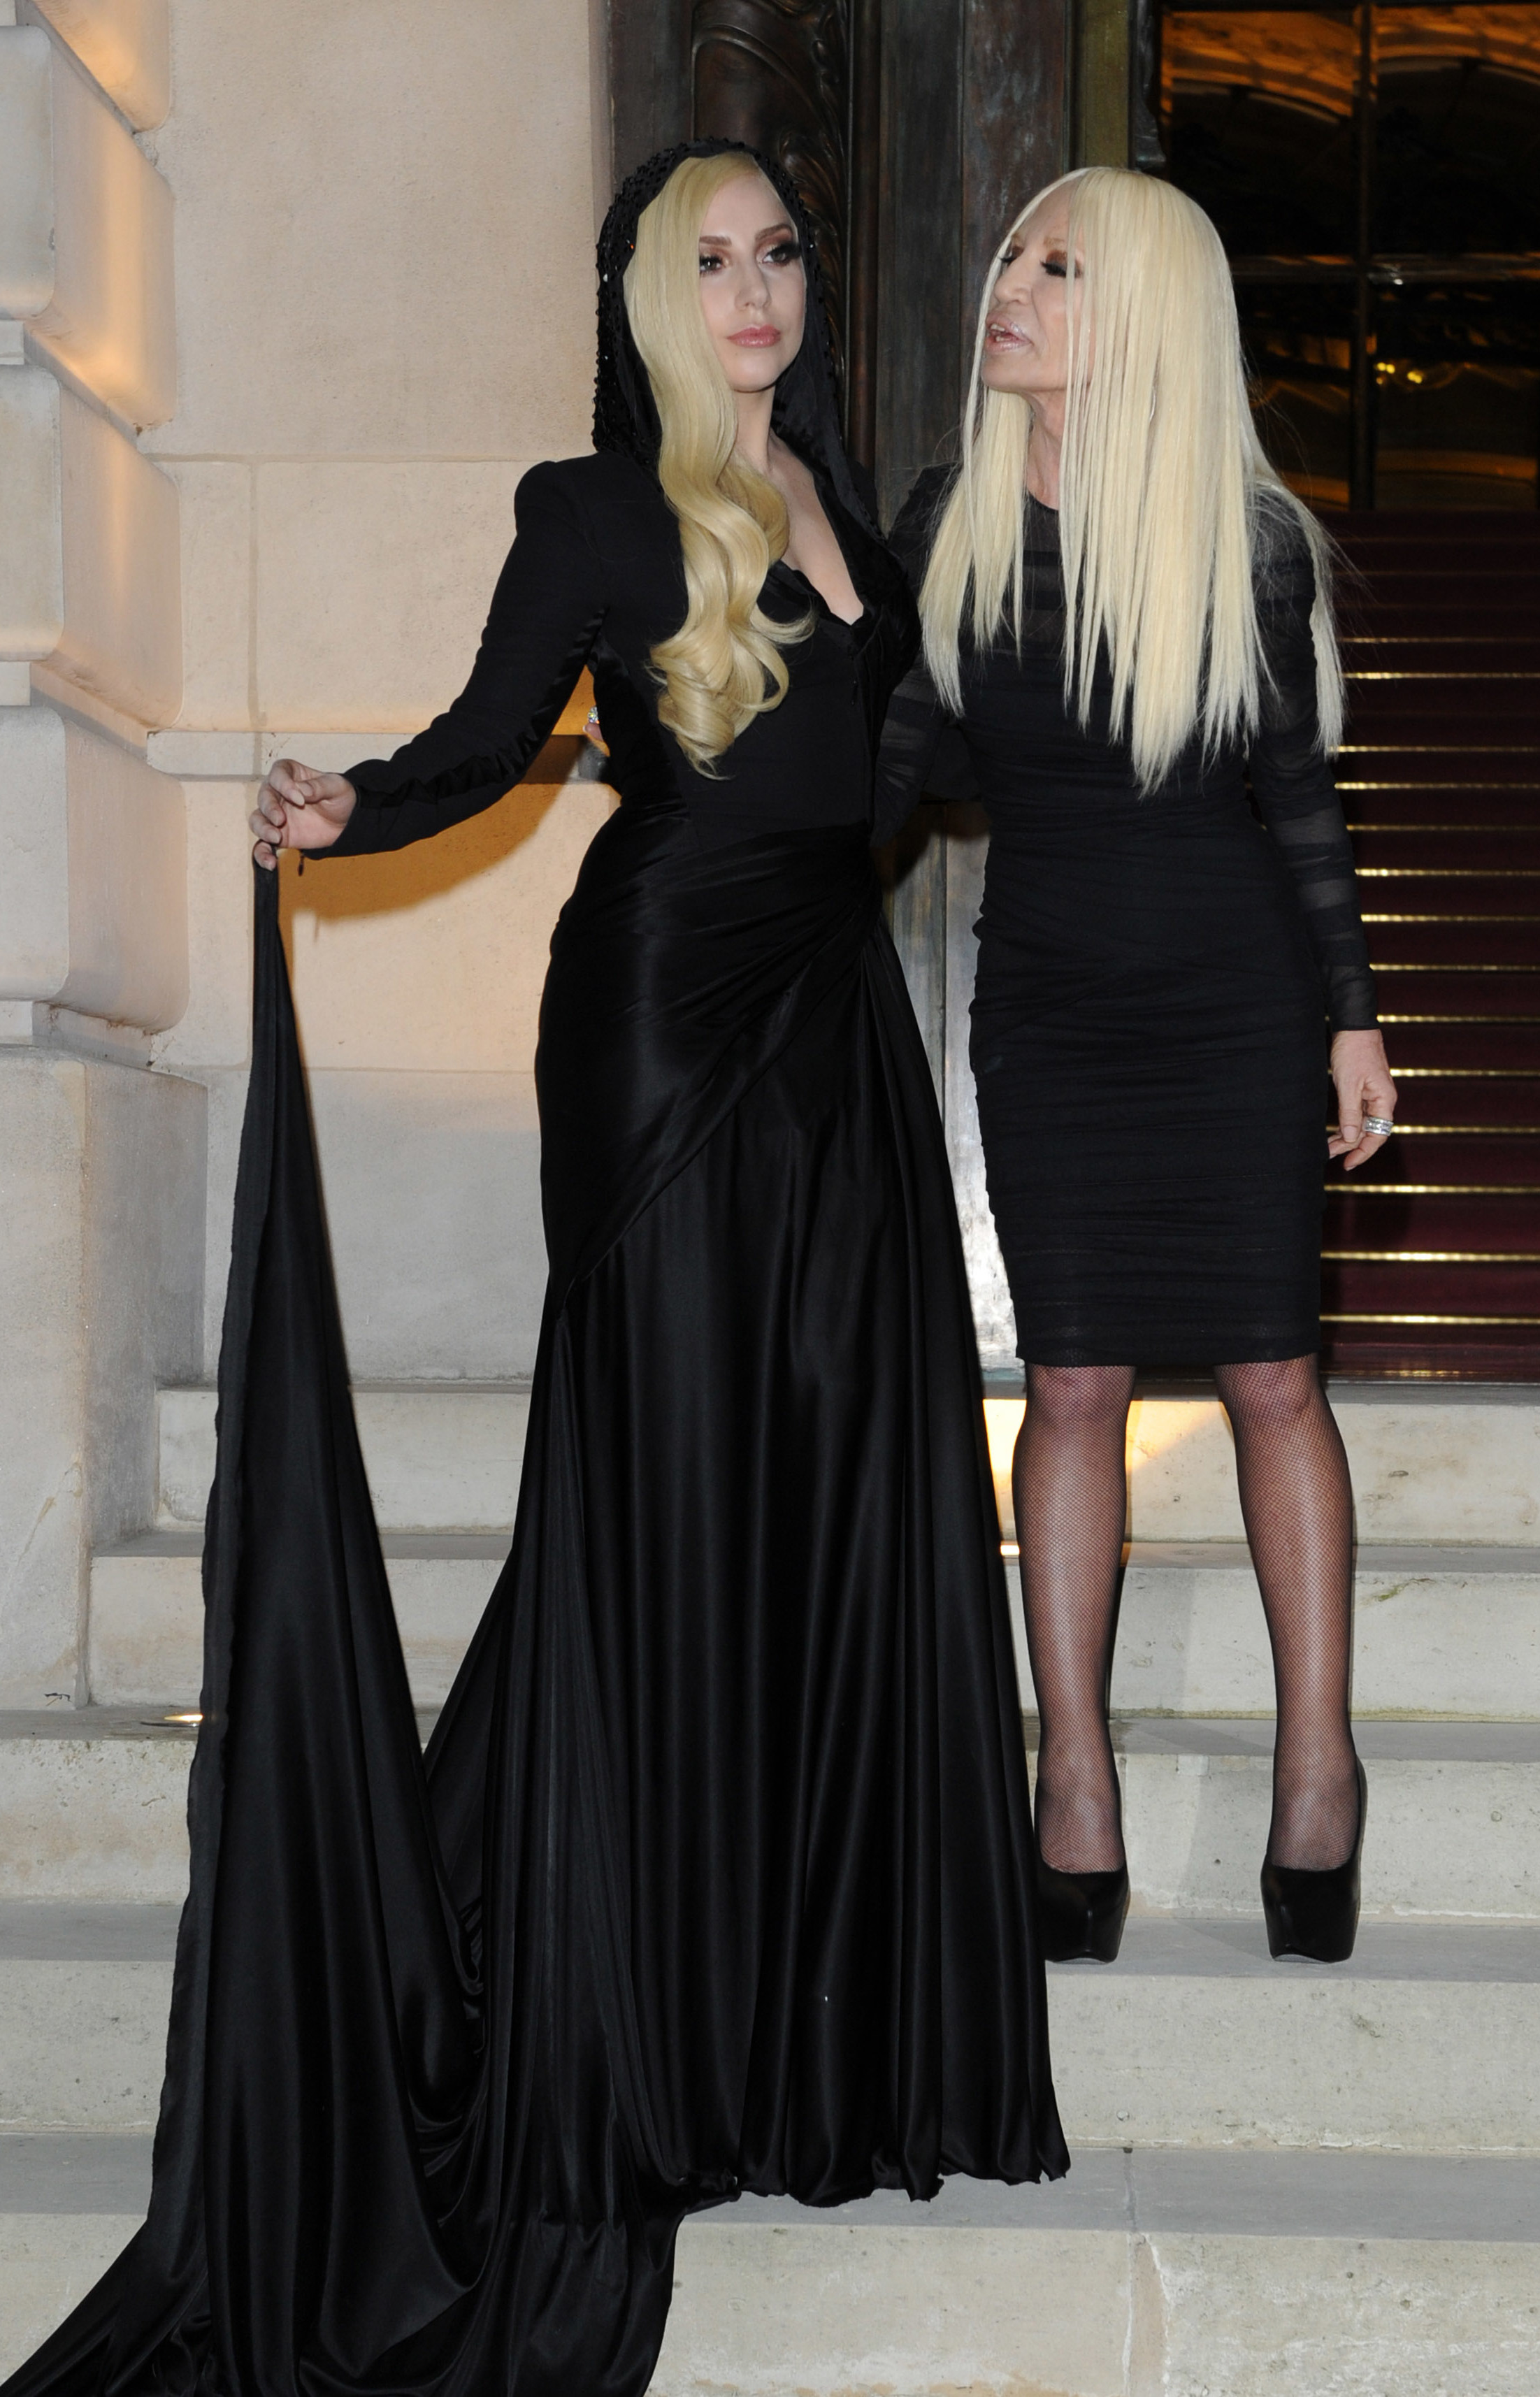 Lady Gaga and Donatella Versace attend the Atelier Versace fashion show